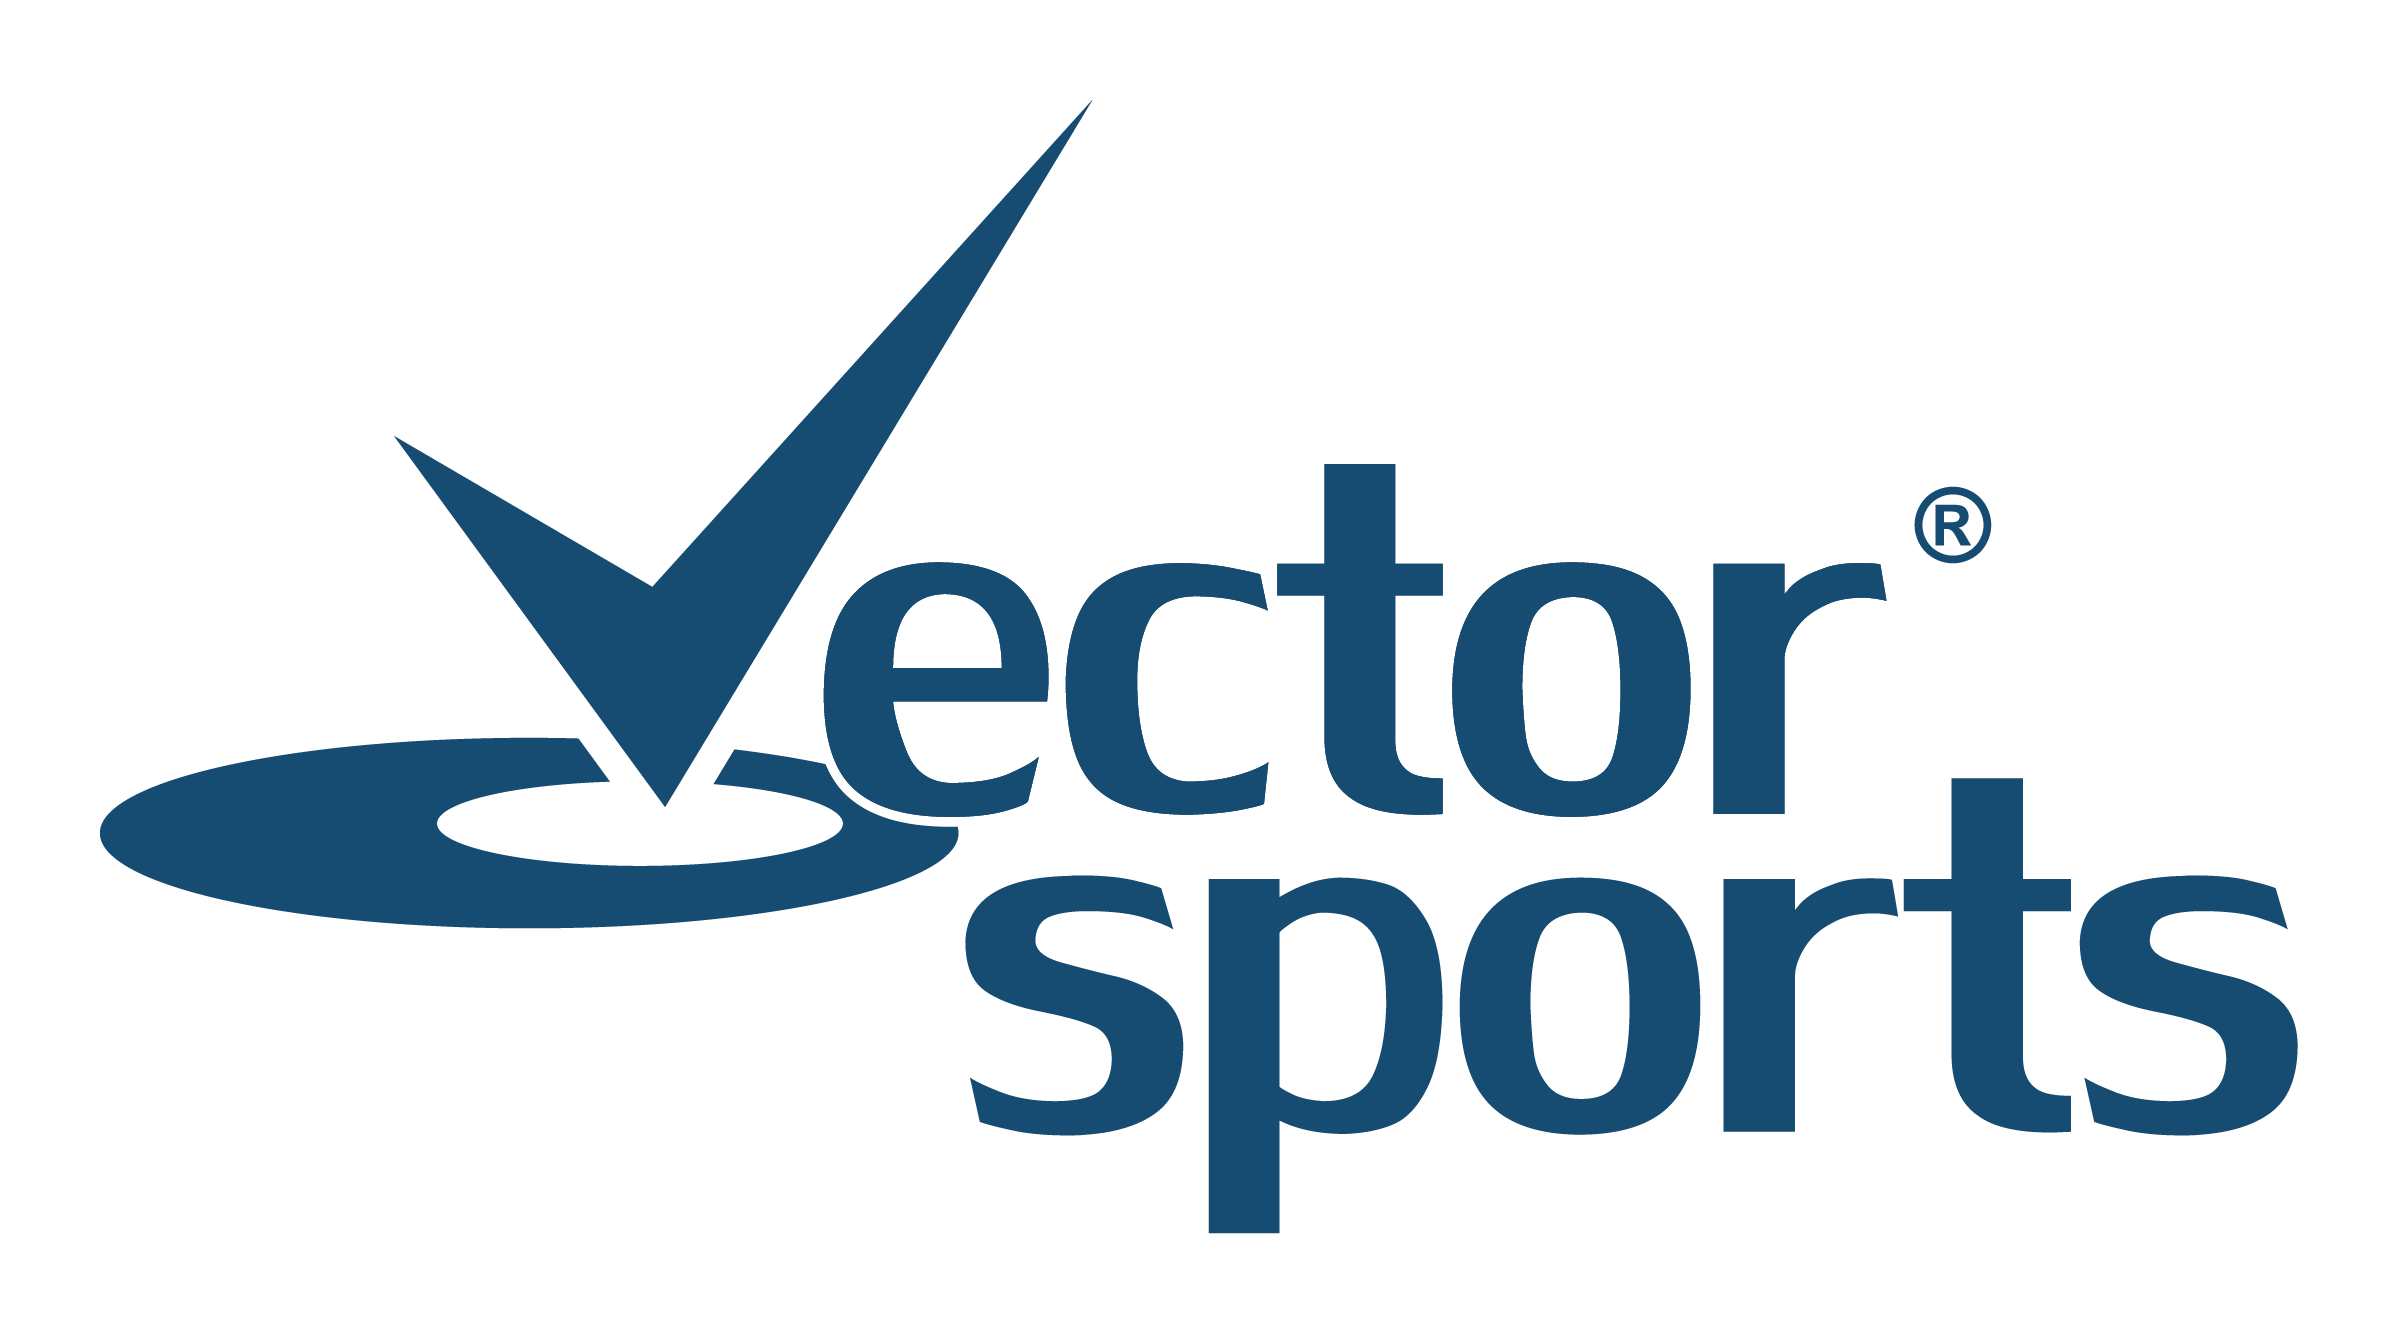 Vector sports